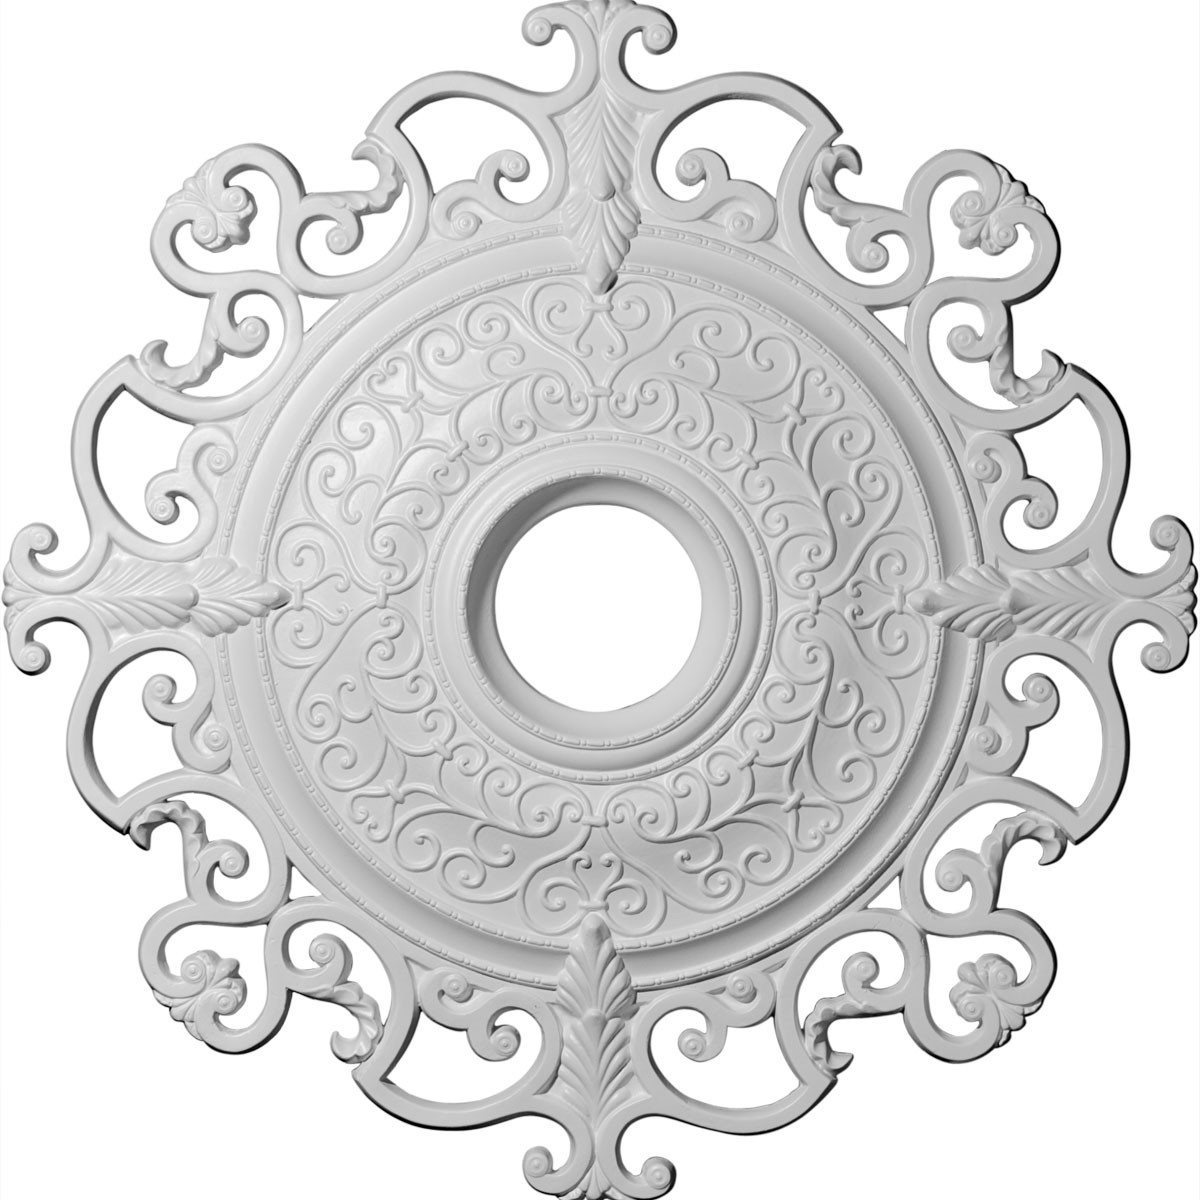 """EM-CM38OL - 38 3/8""""OD x 6 5/8""""ID x 2 7/8""""P Orleans Ceiling Medallion (Fits Canopies up to 8 1/4"""")"""